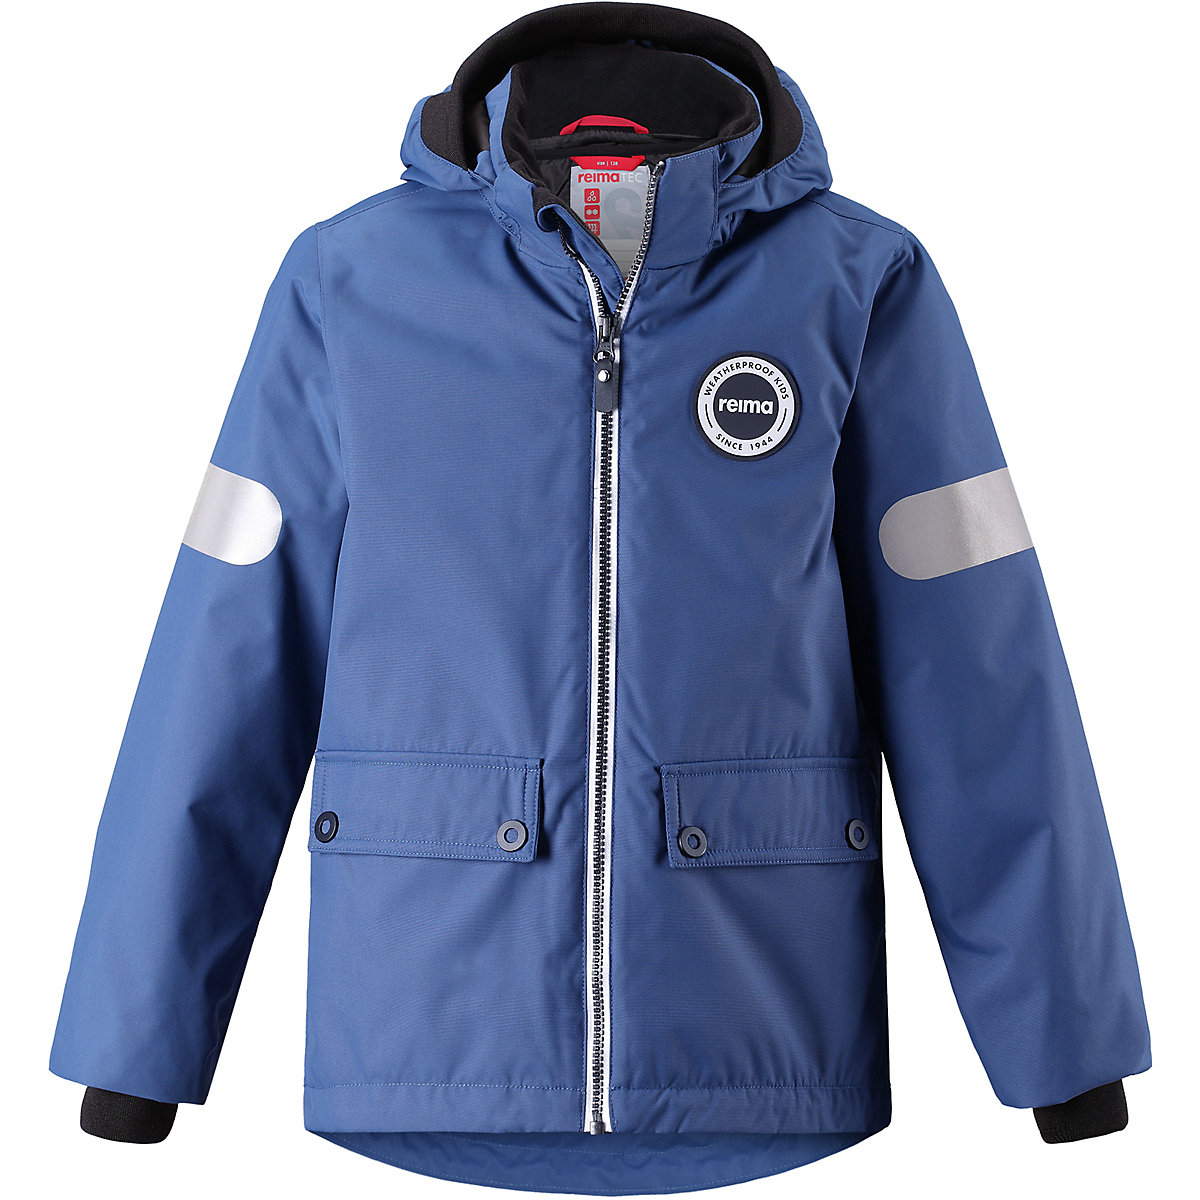 REIMA Jackets 8689281 For boys Polyester  winter fur baby clothing boy Jacket faux fur collar zip up pu leather jacket